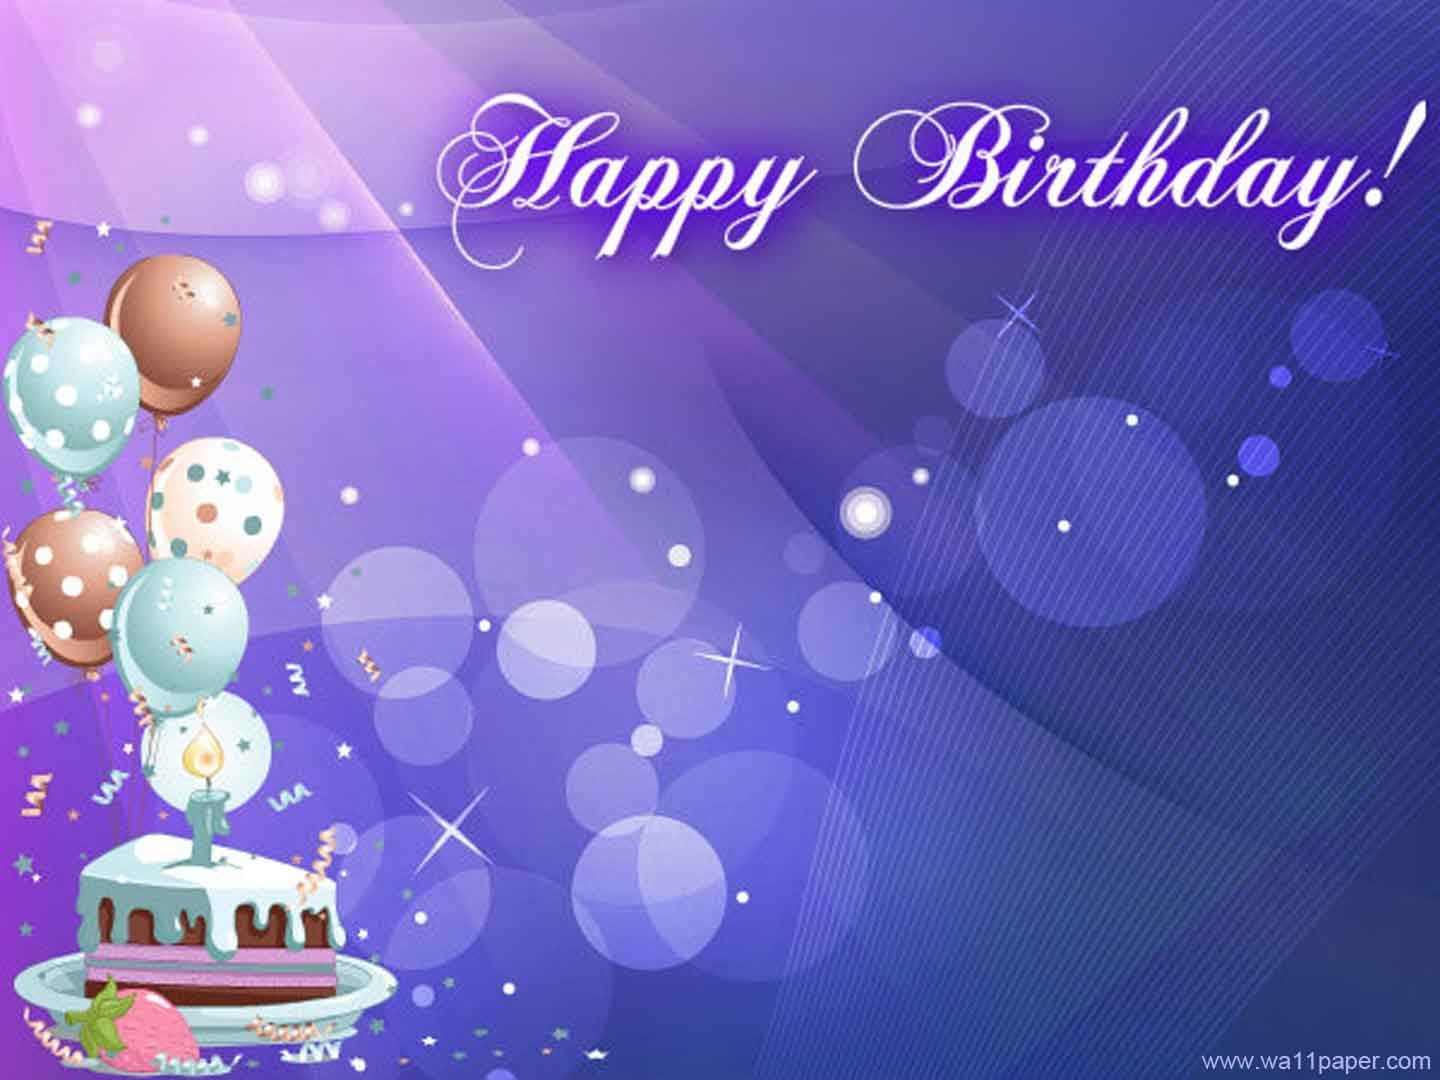 Birthday Wallpaper